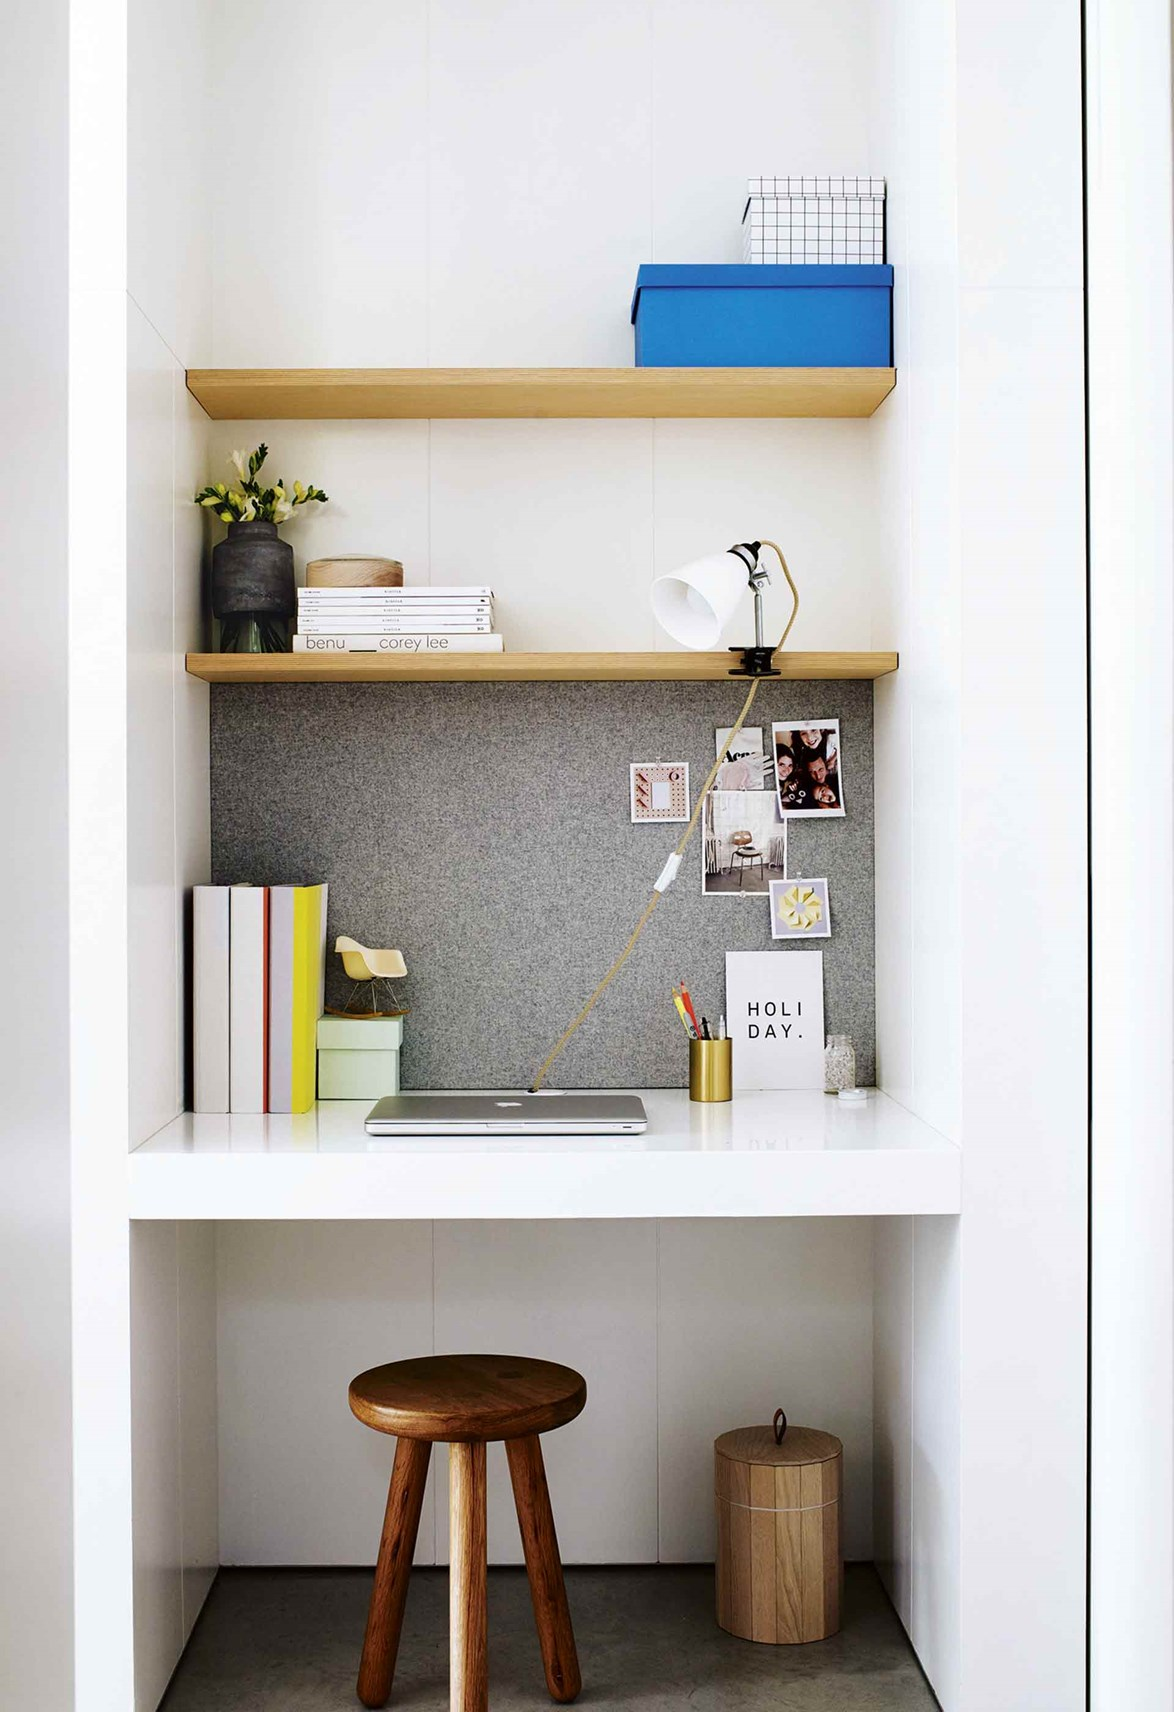 Even the smallest spot can become a functional study nook with a little creativity.